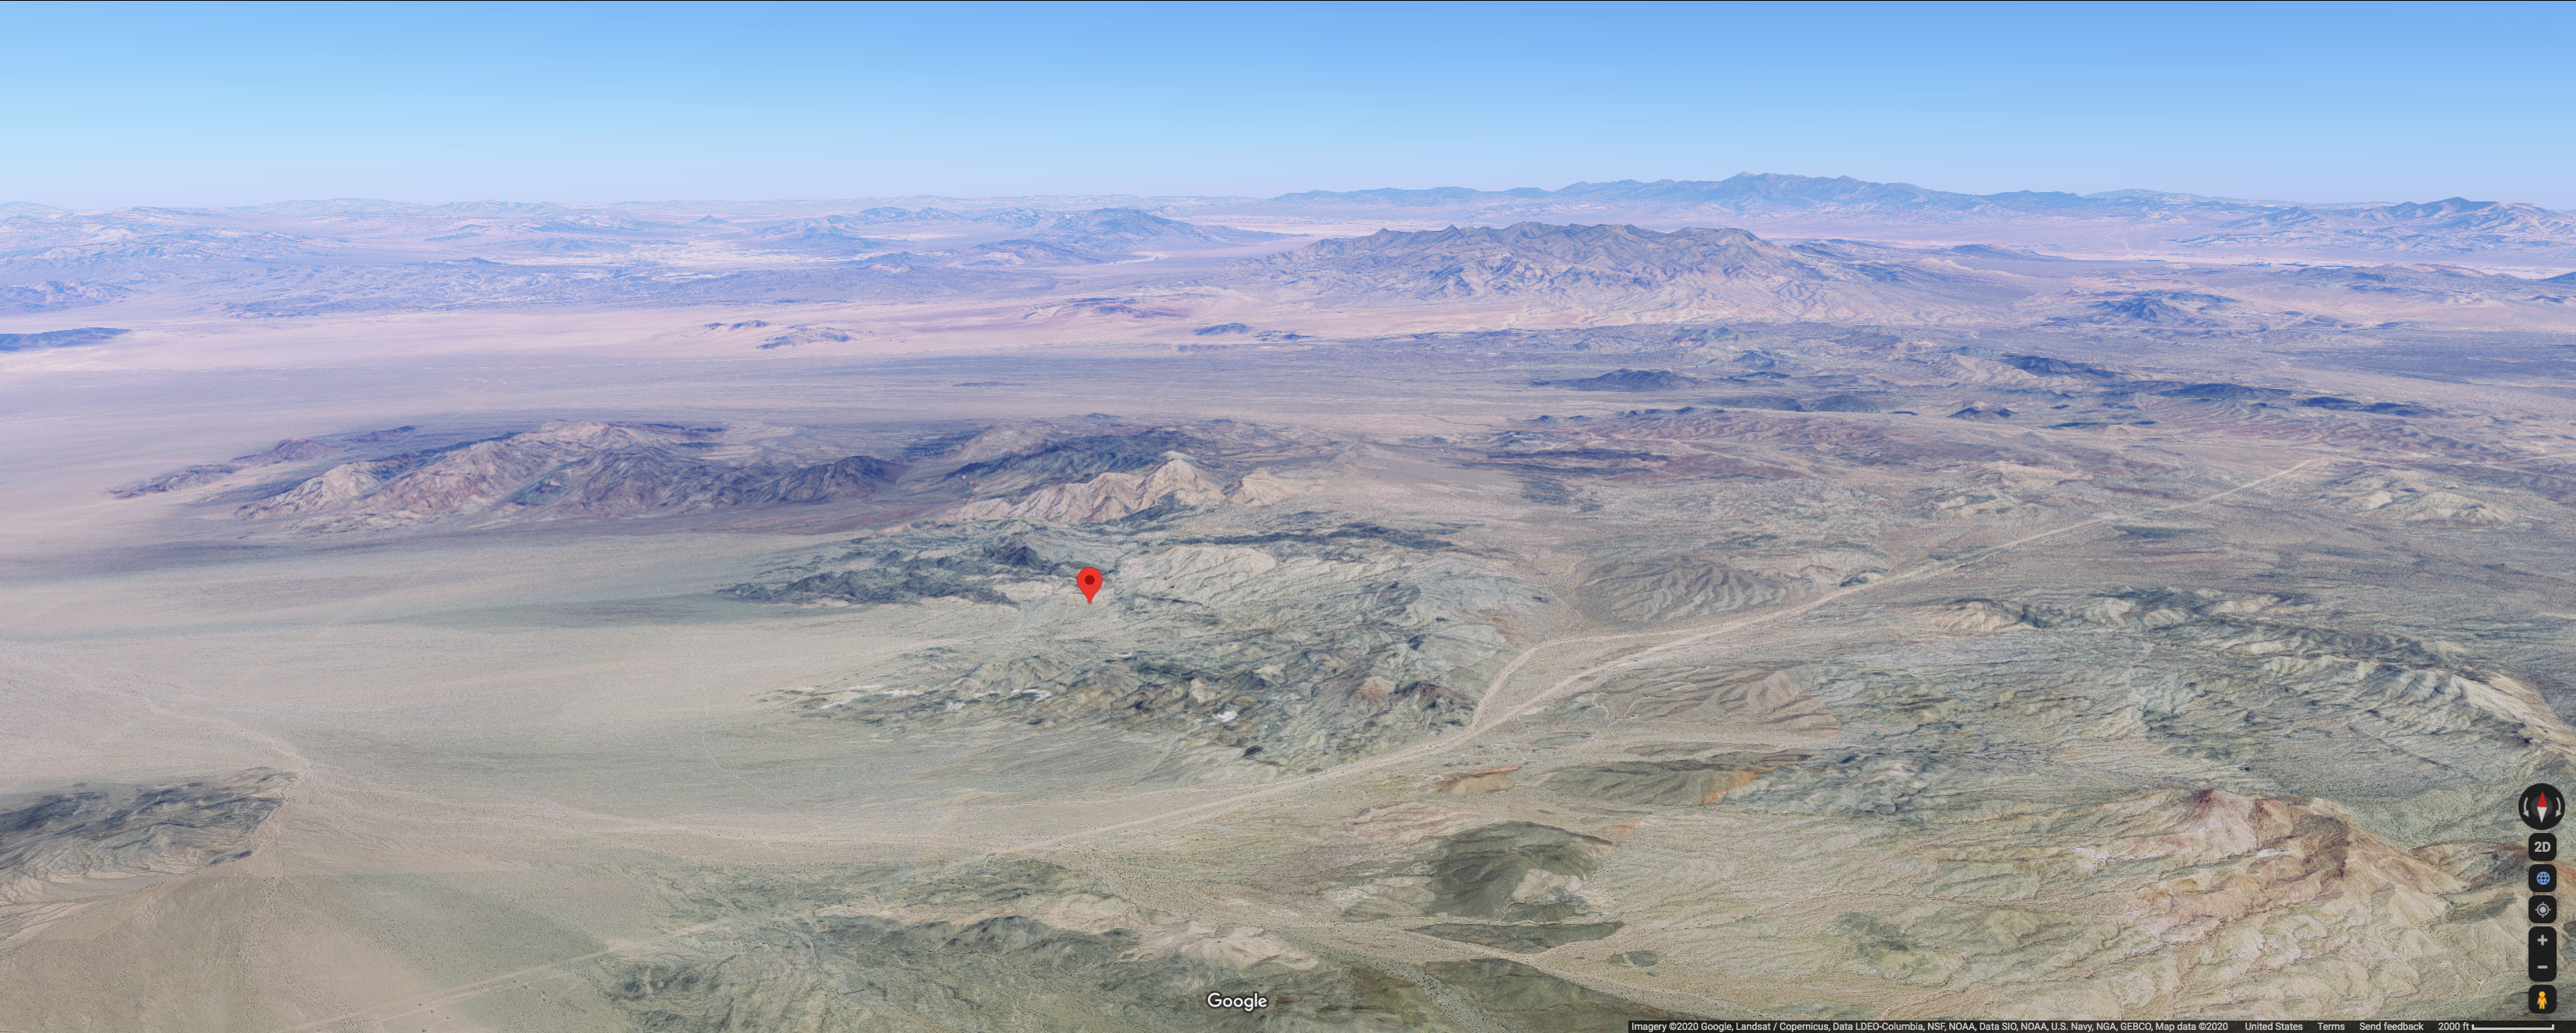 The spot in the Mojave Desert 20 miles north of Baker, California, where a Bonanza F-33 was found eight months after going missing.